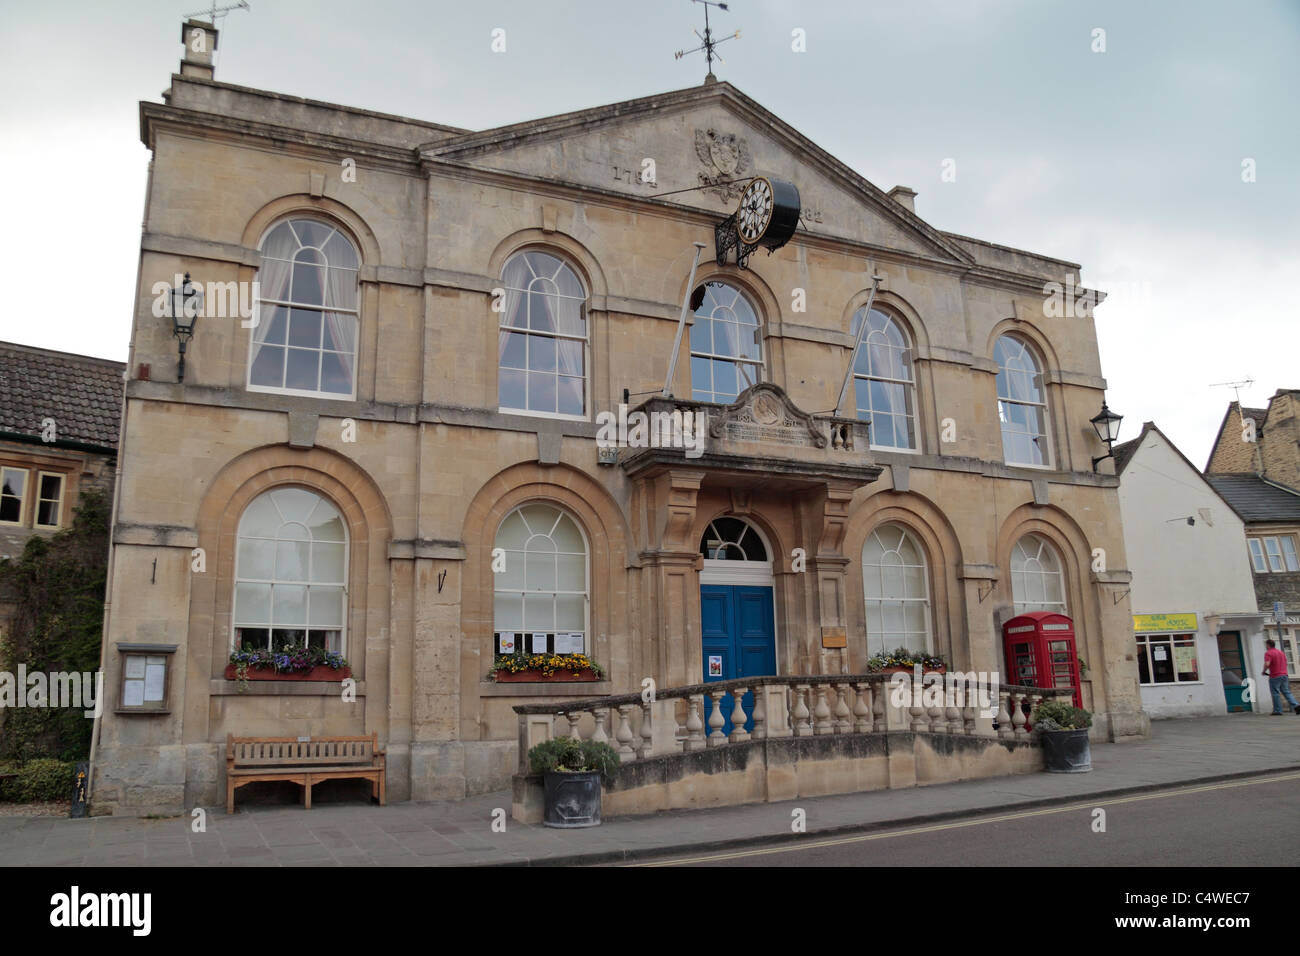 Corsham Town Council and Community Information Office in Corsham, Wiltshire, UK. Stock Photo